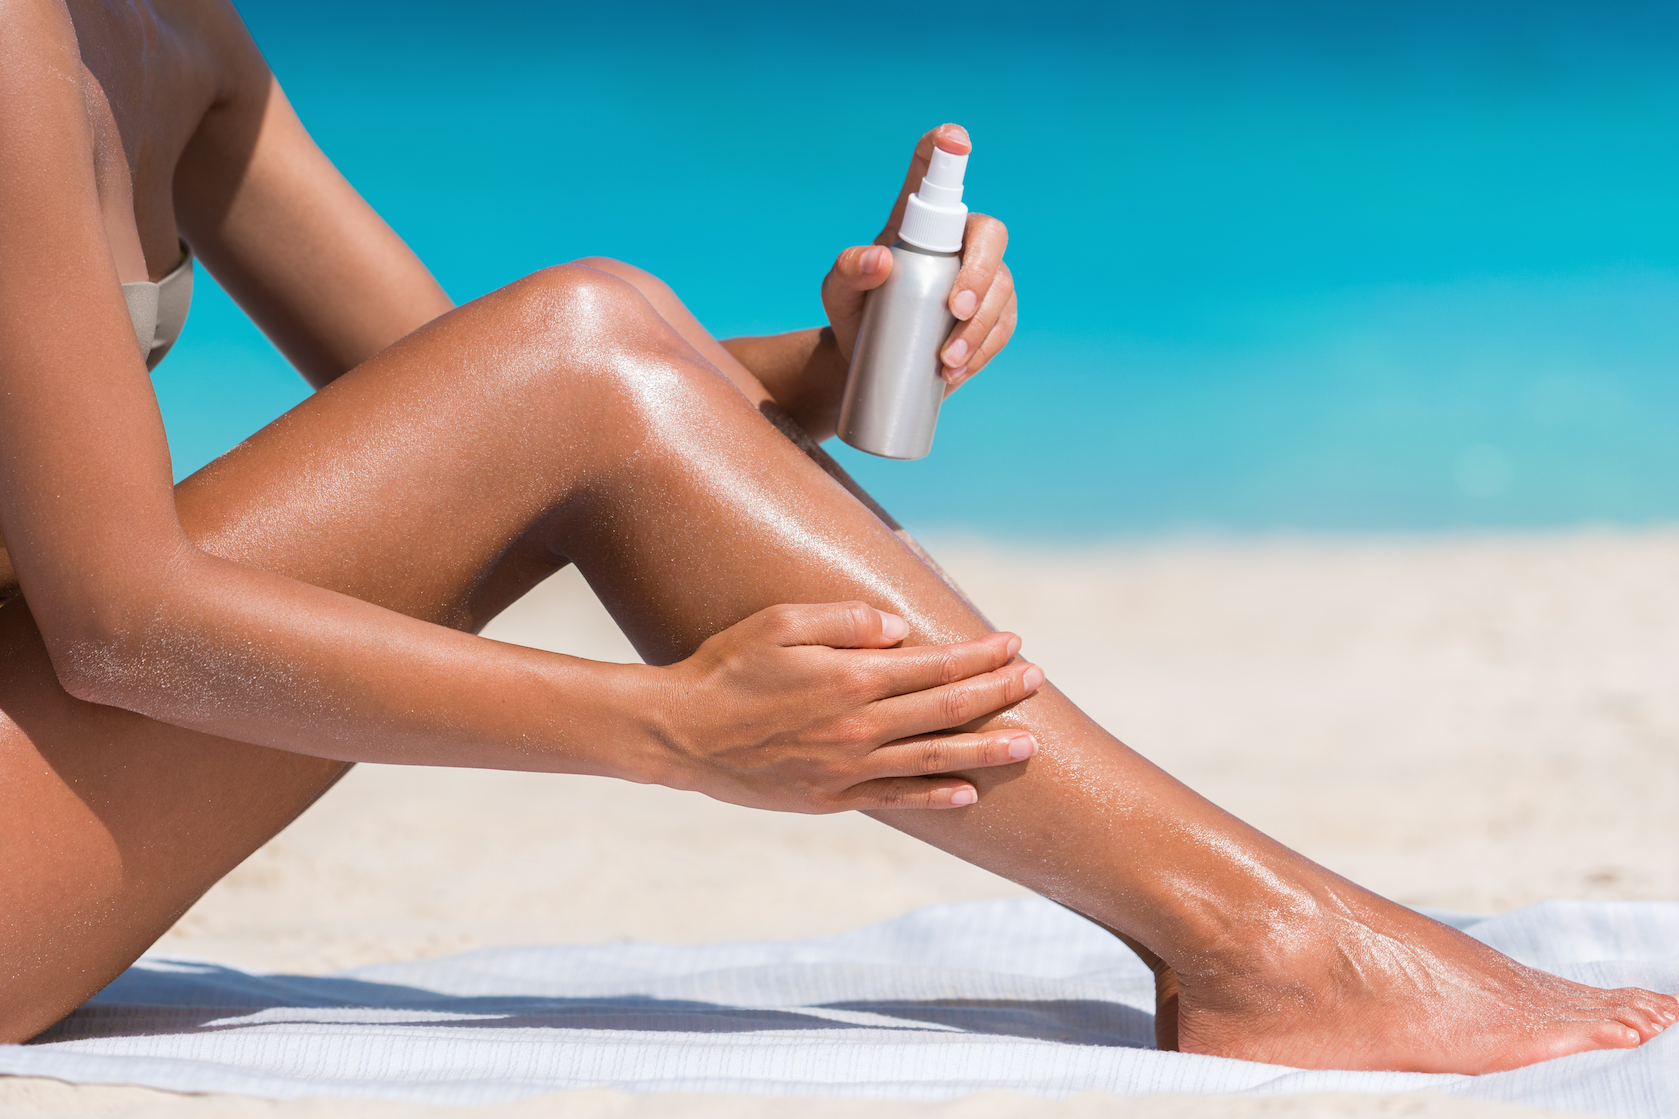 A team of researchers have set out to better understand how molecules in sunscreen absorb light and find ways to increase their absorption.